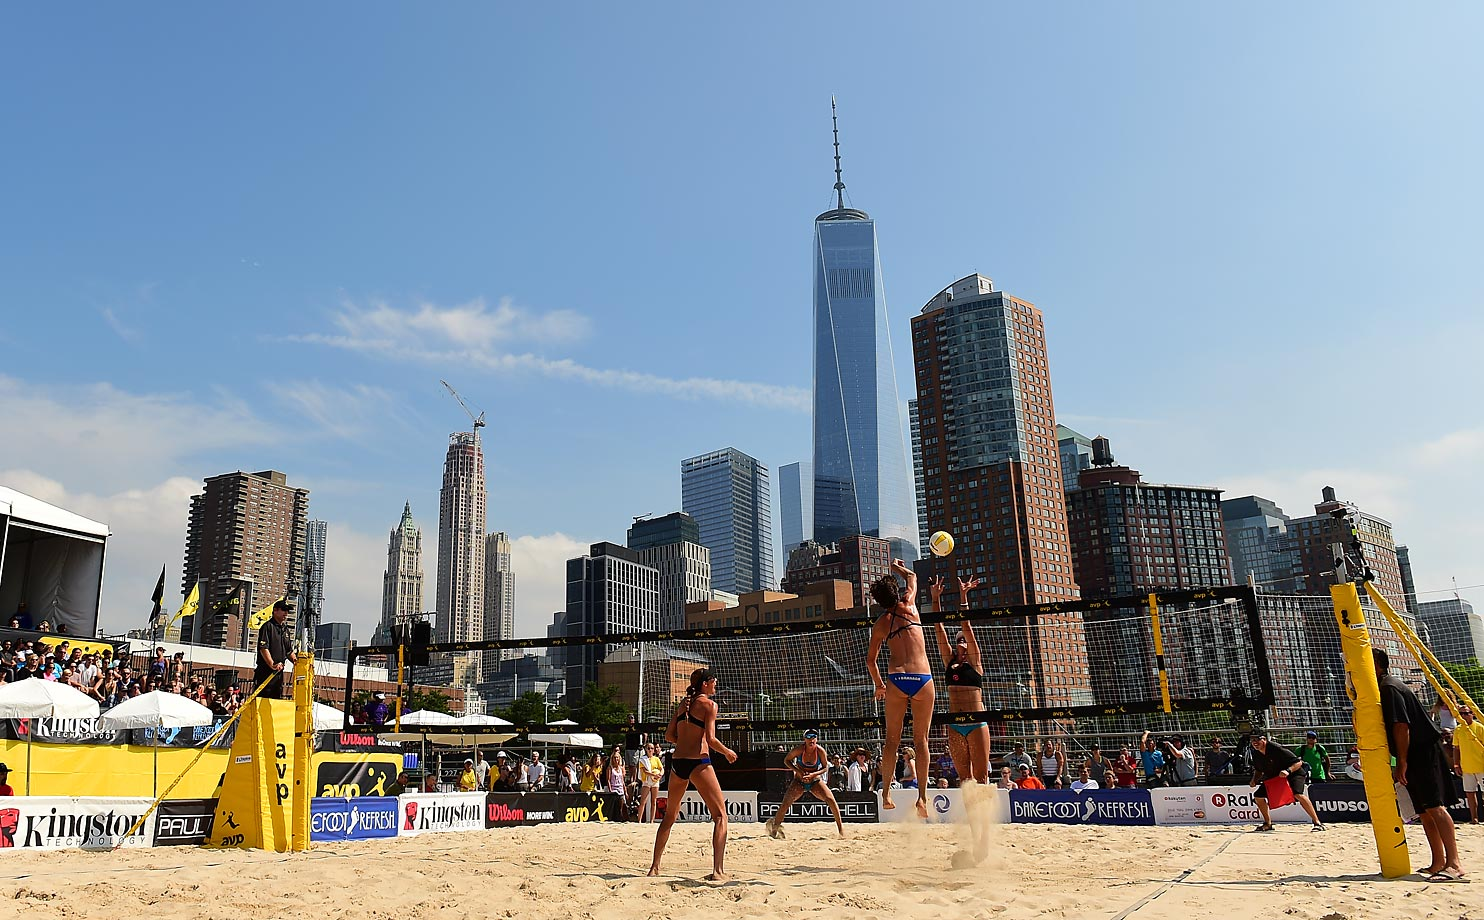 The Freedom Tower and lower Manhattan provided a great backdrop to the tournament.